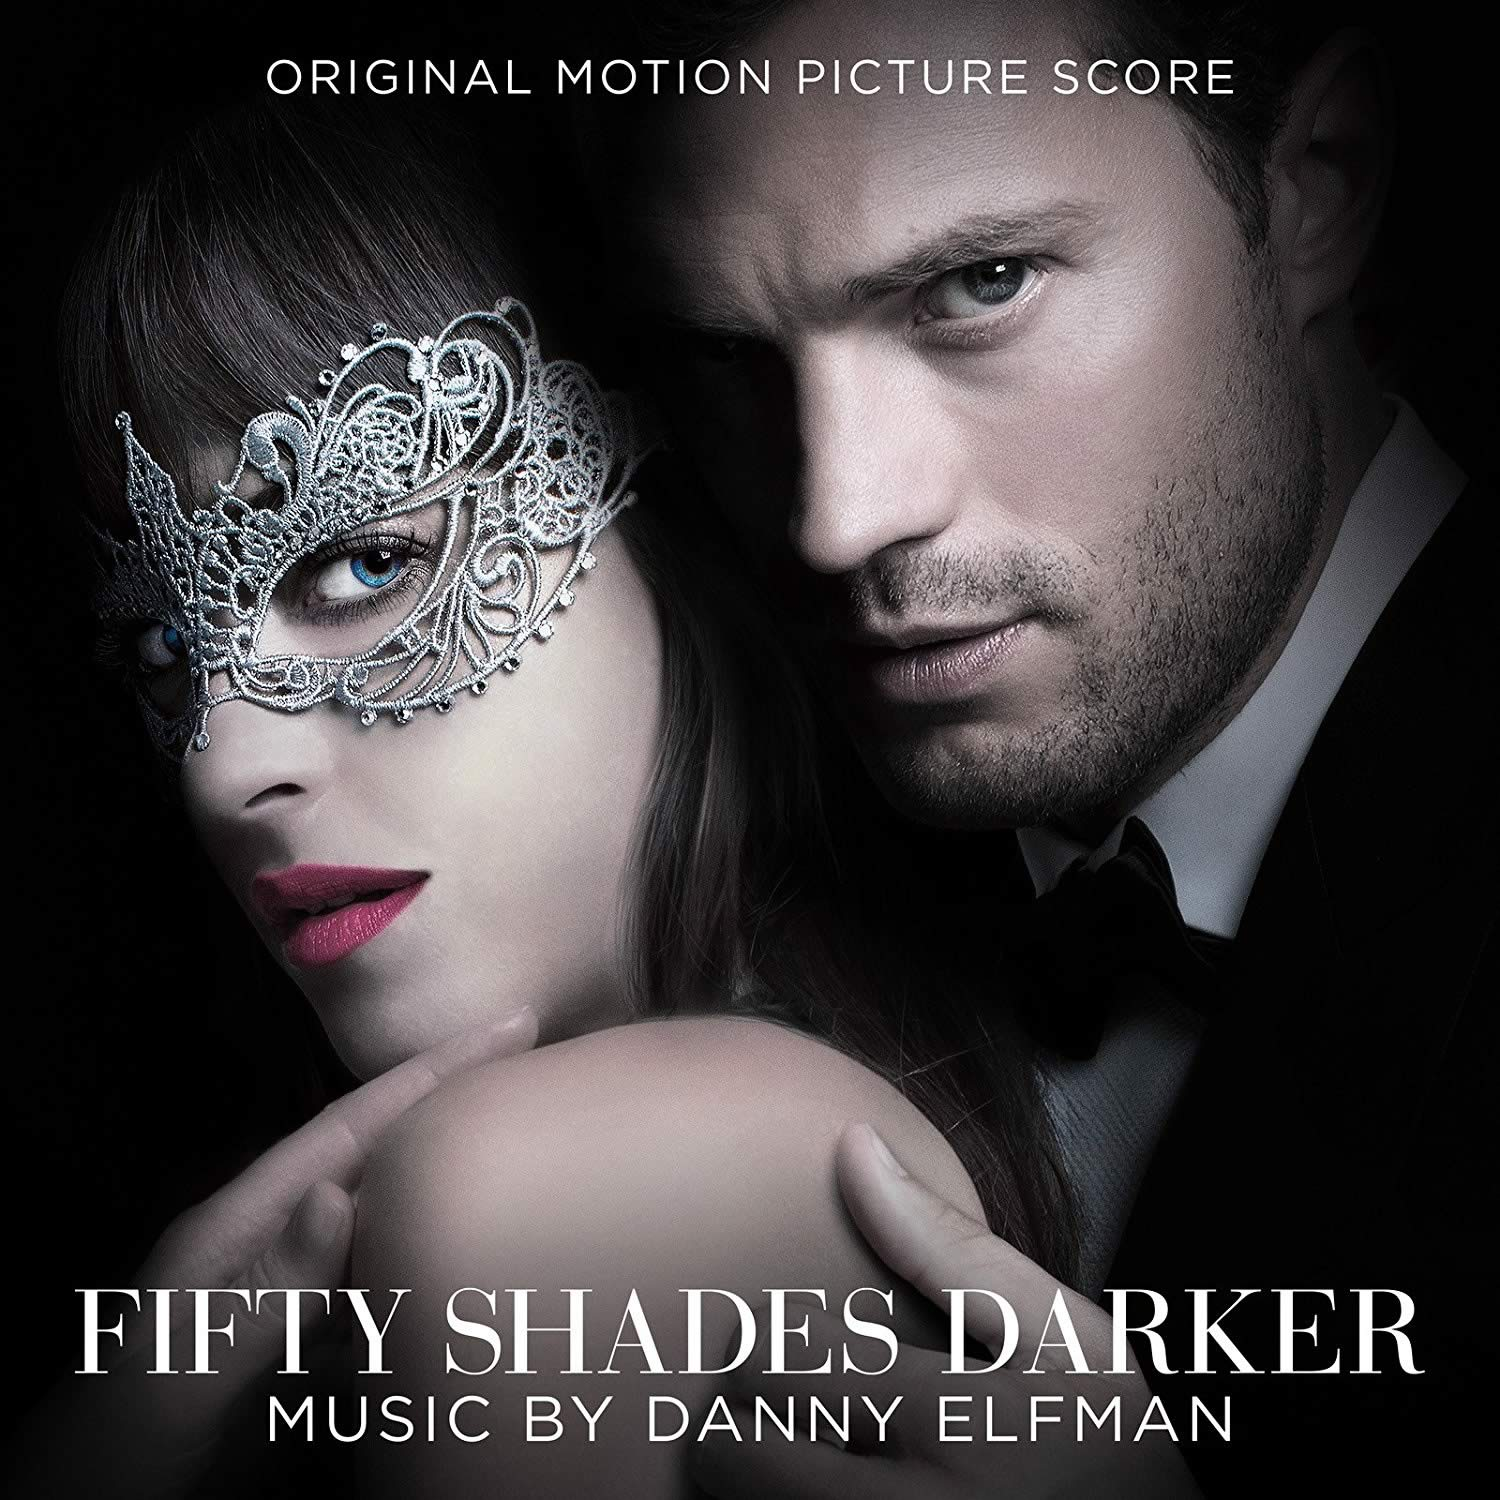 FIFTY SHADES DARKER - THE ORIGINAL MOTION PICTURE SCORE (AUDIO CD)